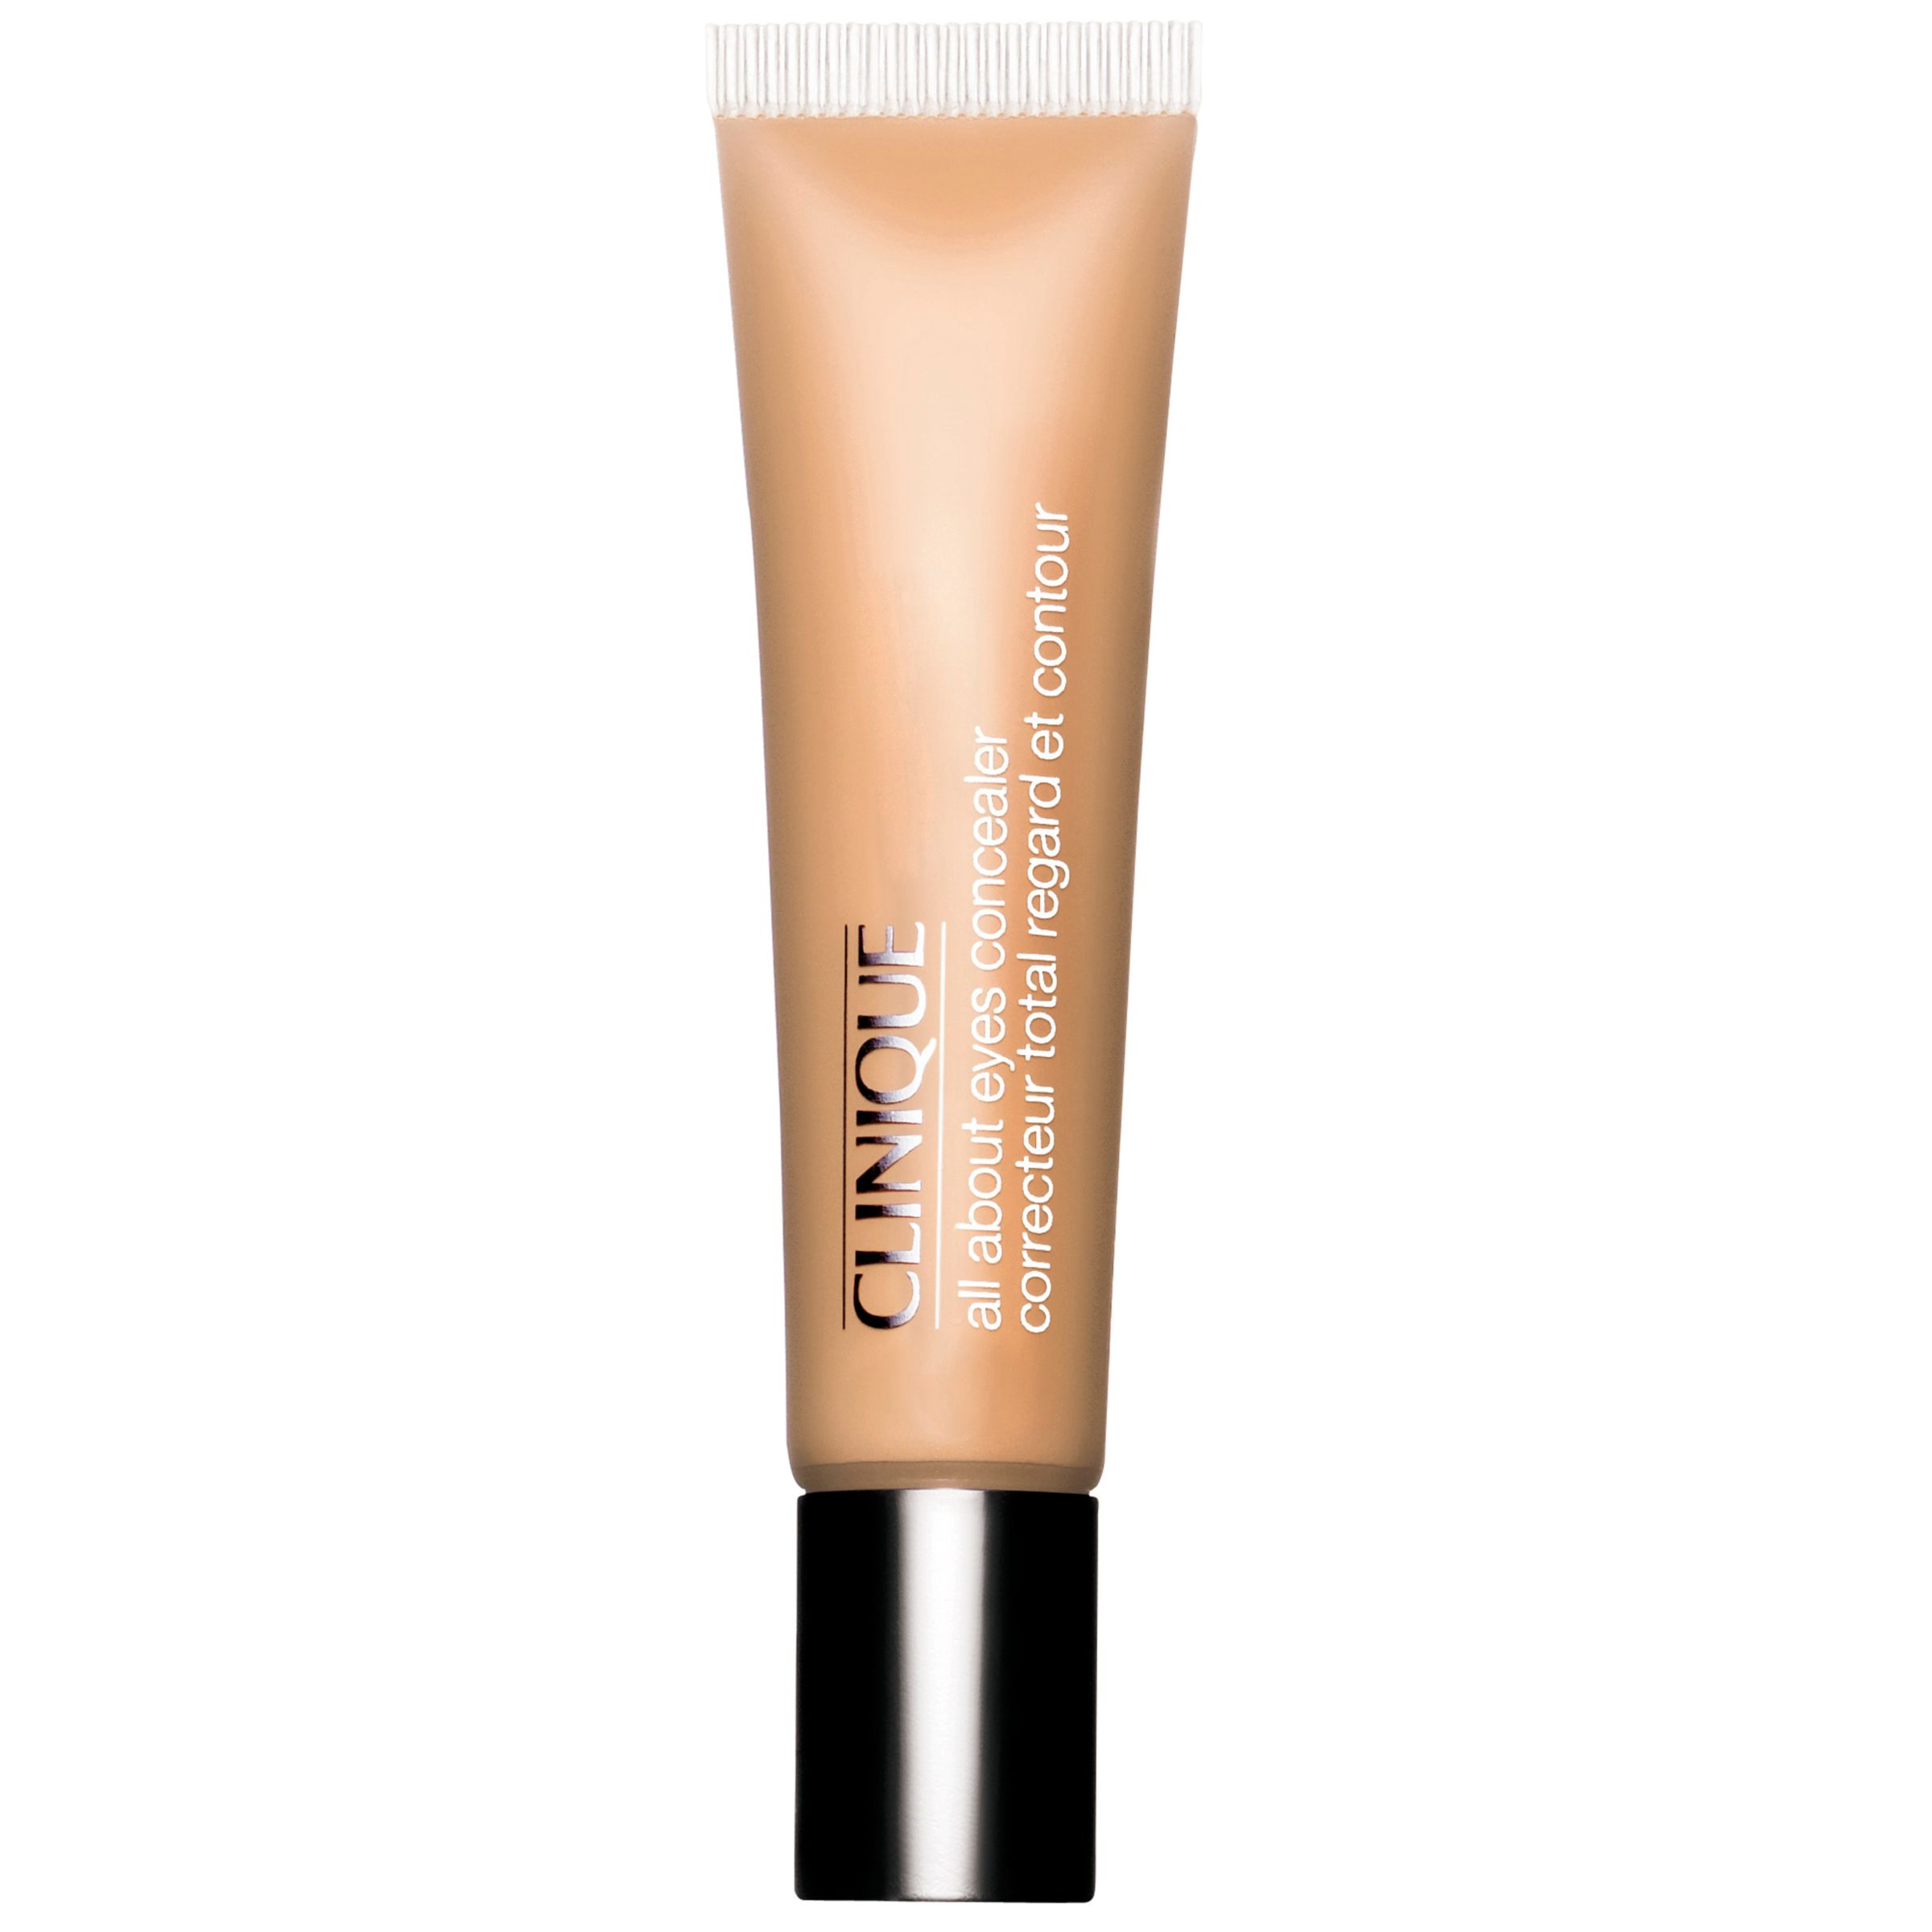 CLINIQUE all about eyes concealer 10ml Light Neutral